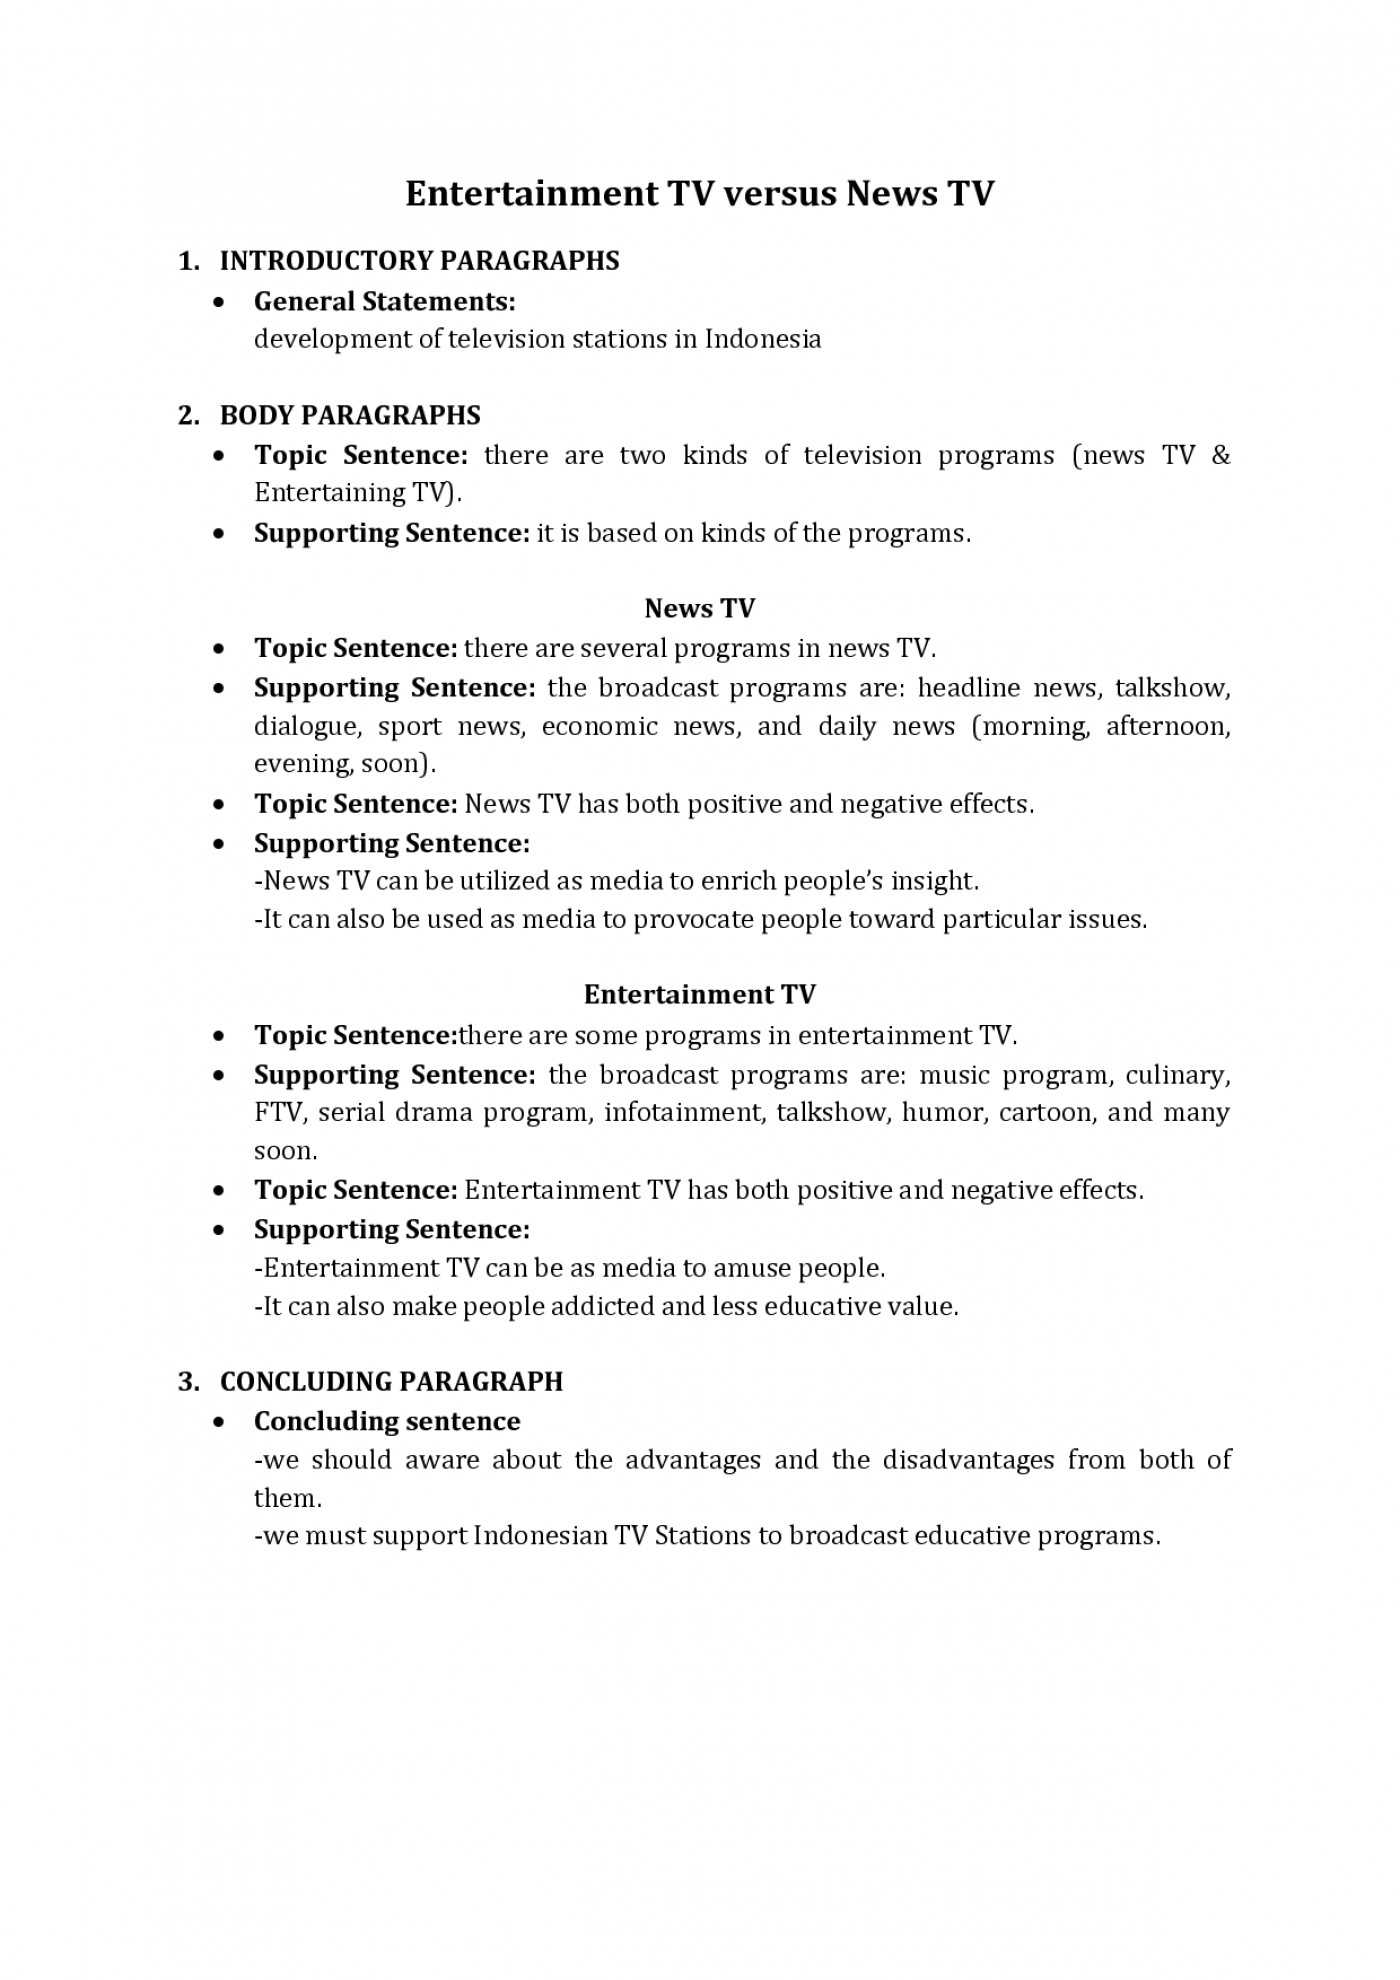 005 Fbunmxinib How To Write An Essay Outline Excellent Pdf For University 1400